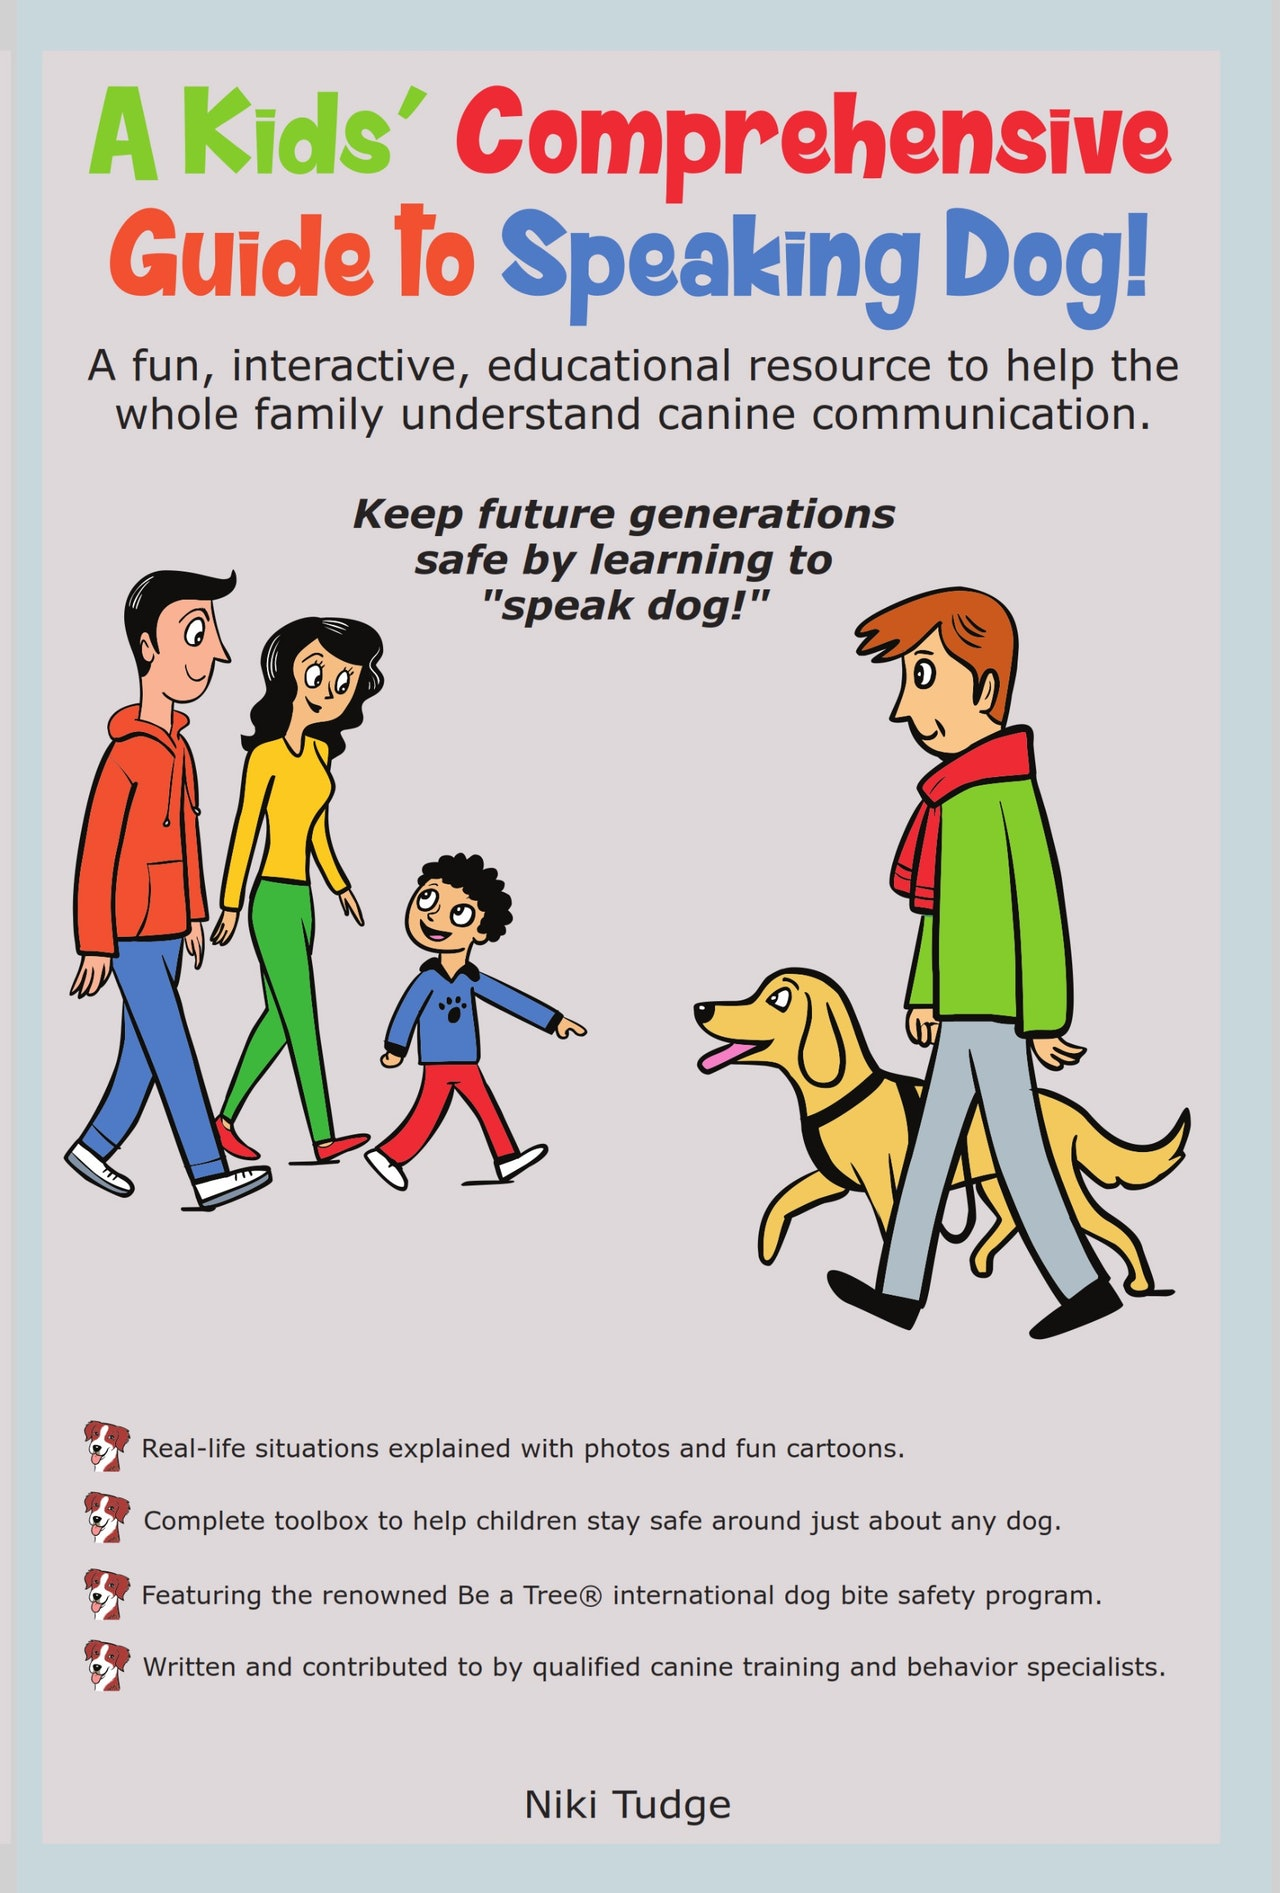 A Kids' Comprehensive Guide to Speaking Dog! PDF Version